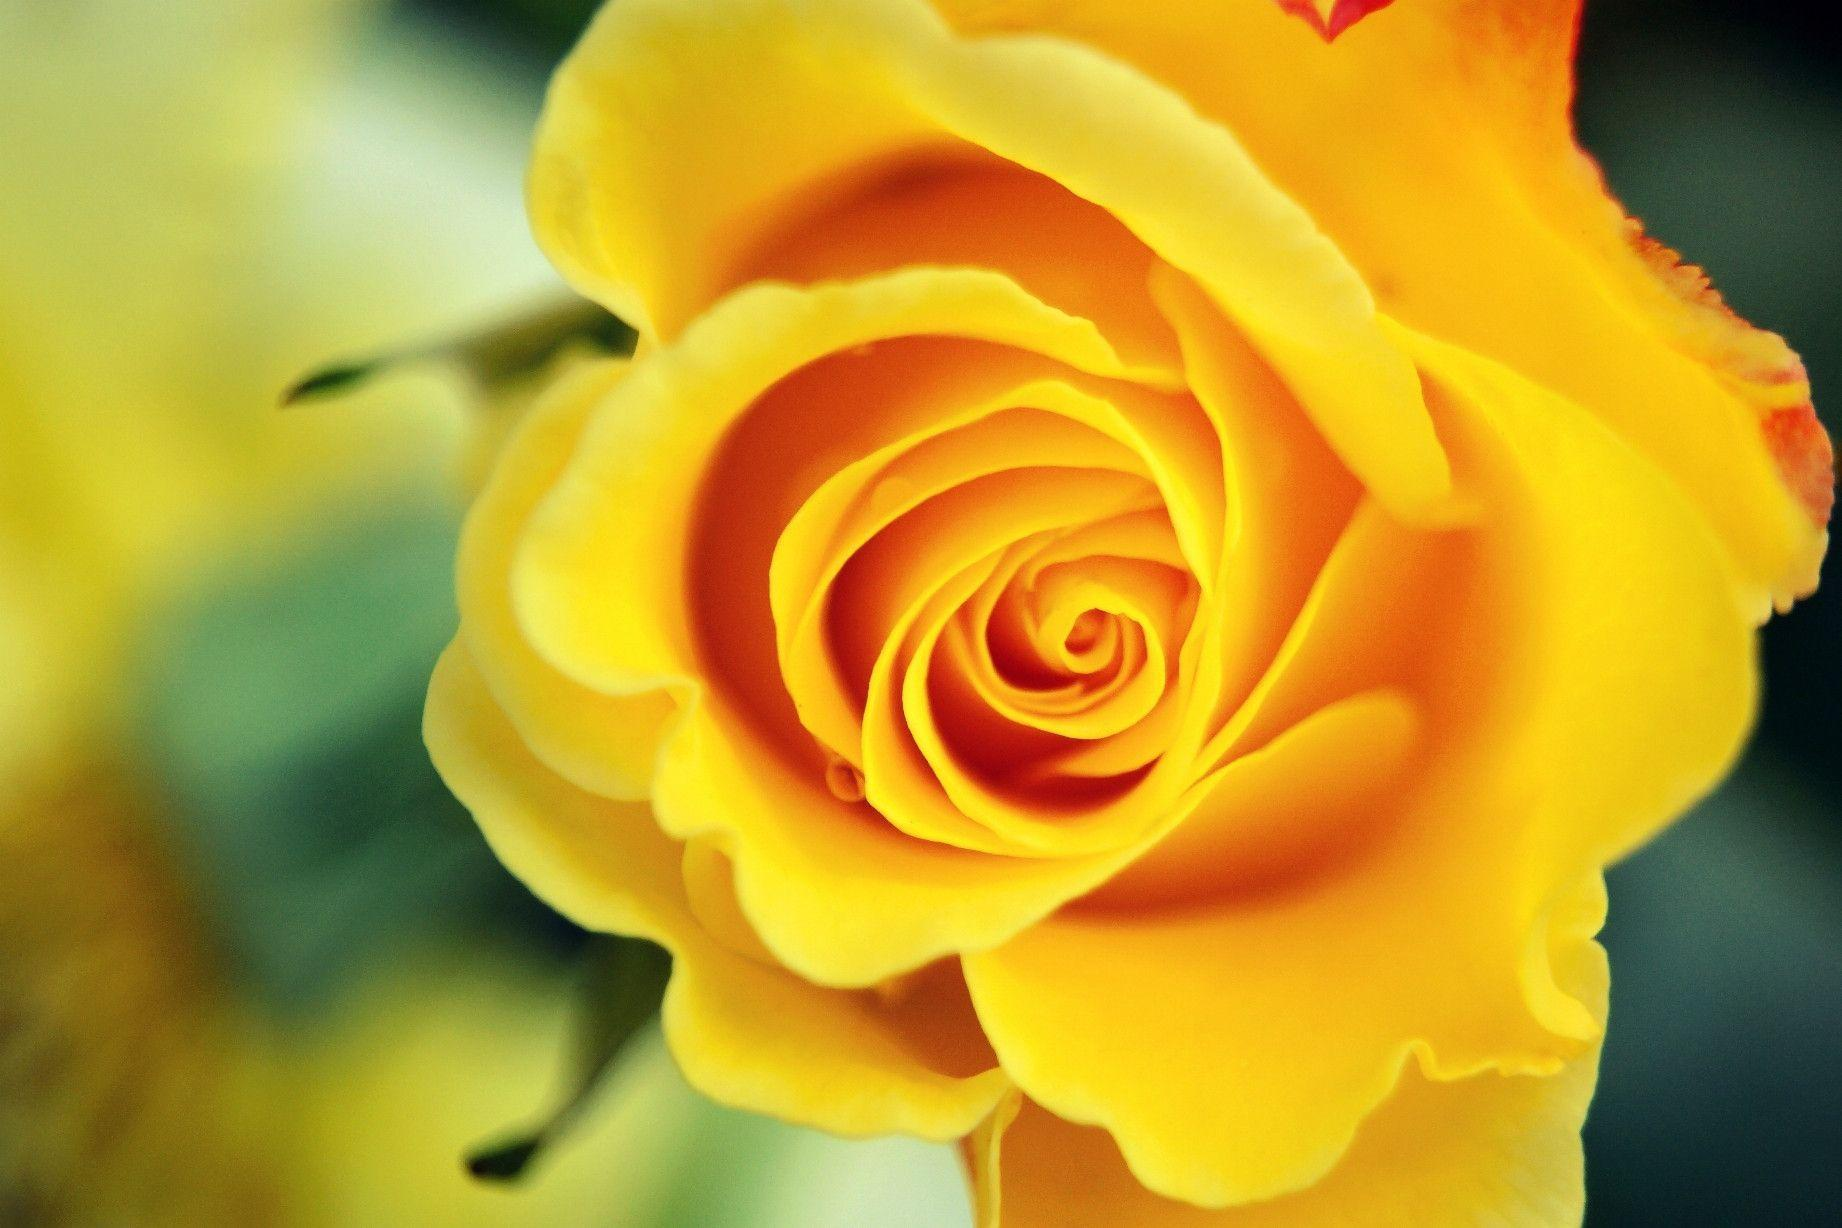 wallpaper of yellow roses - photo #8